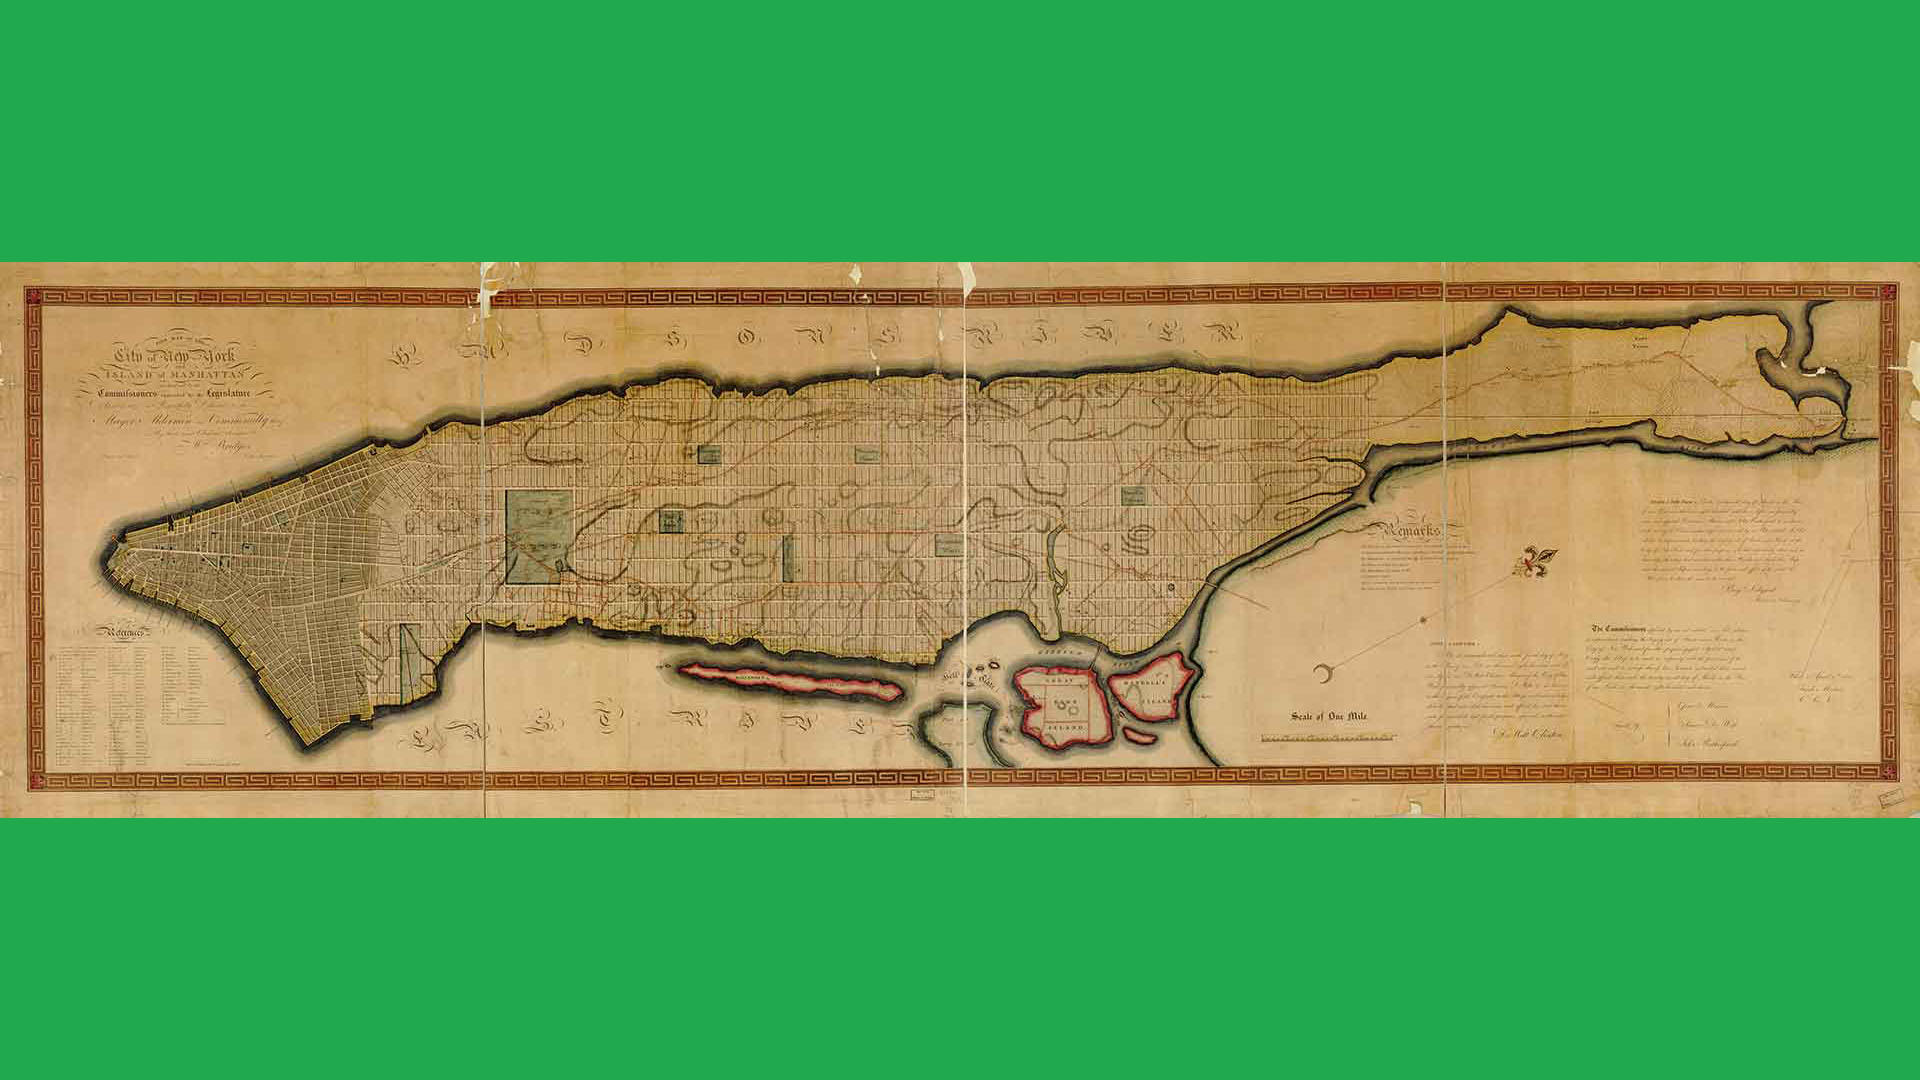 William Bridges and Peter Maverick, Map of the City of New York and Island of Manhattan, 1811